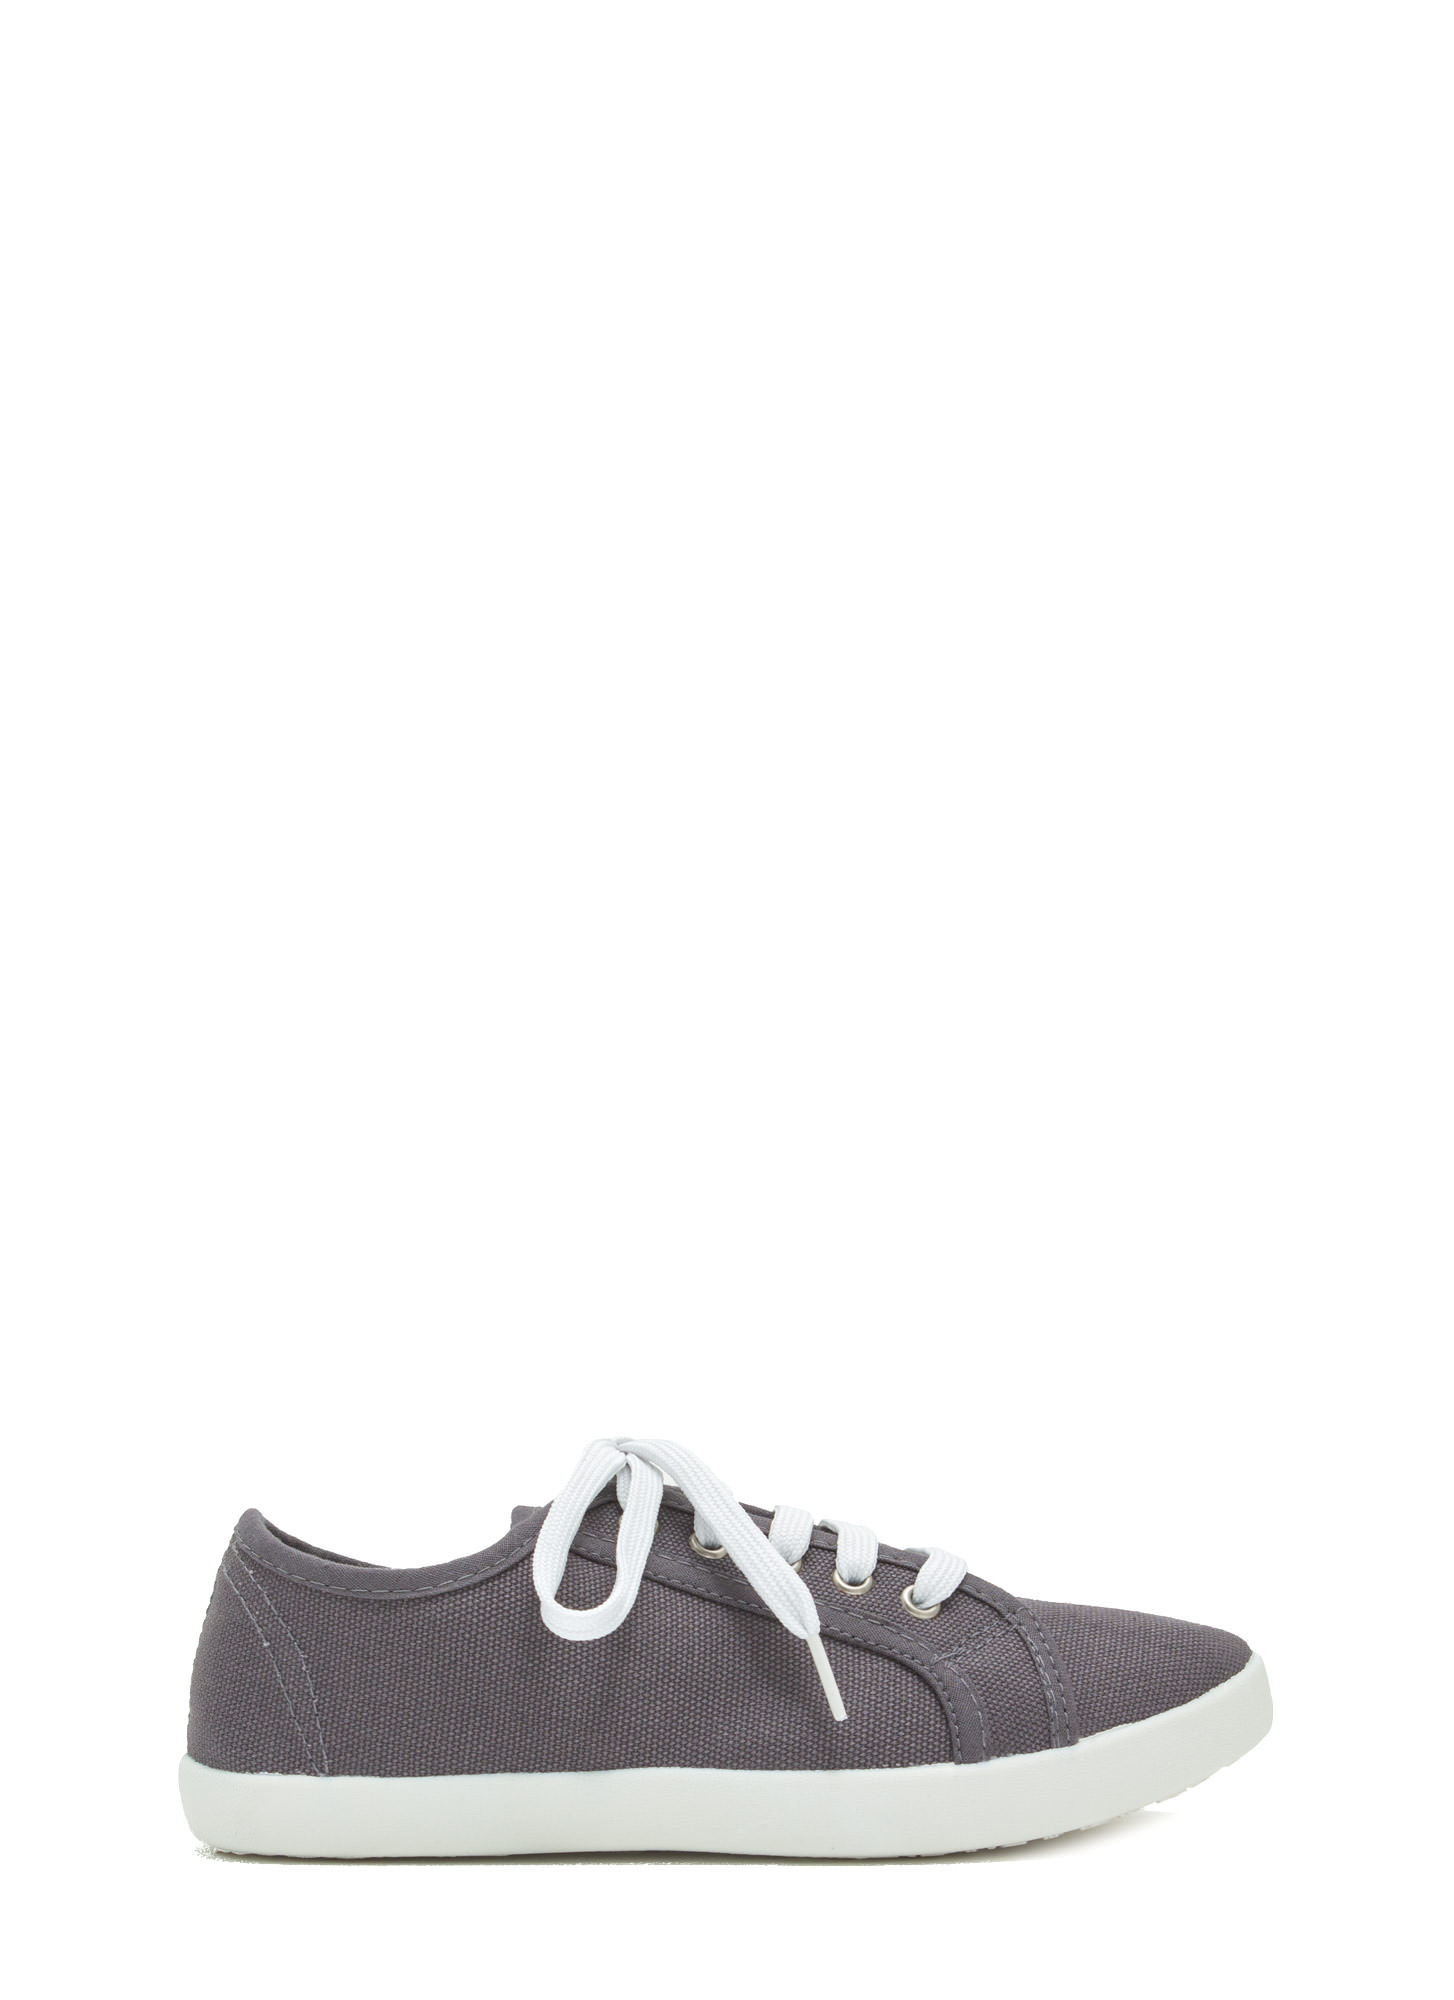 Off-Duty Classic Canvas Sneakers GREY